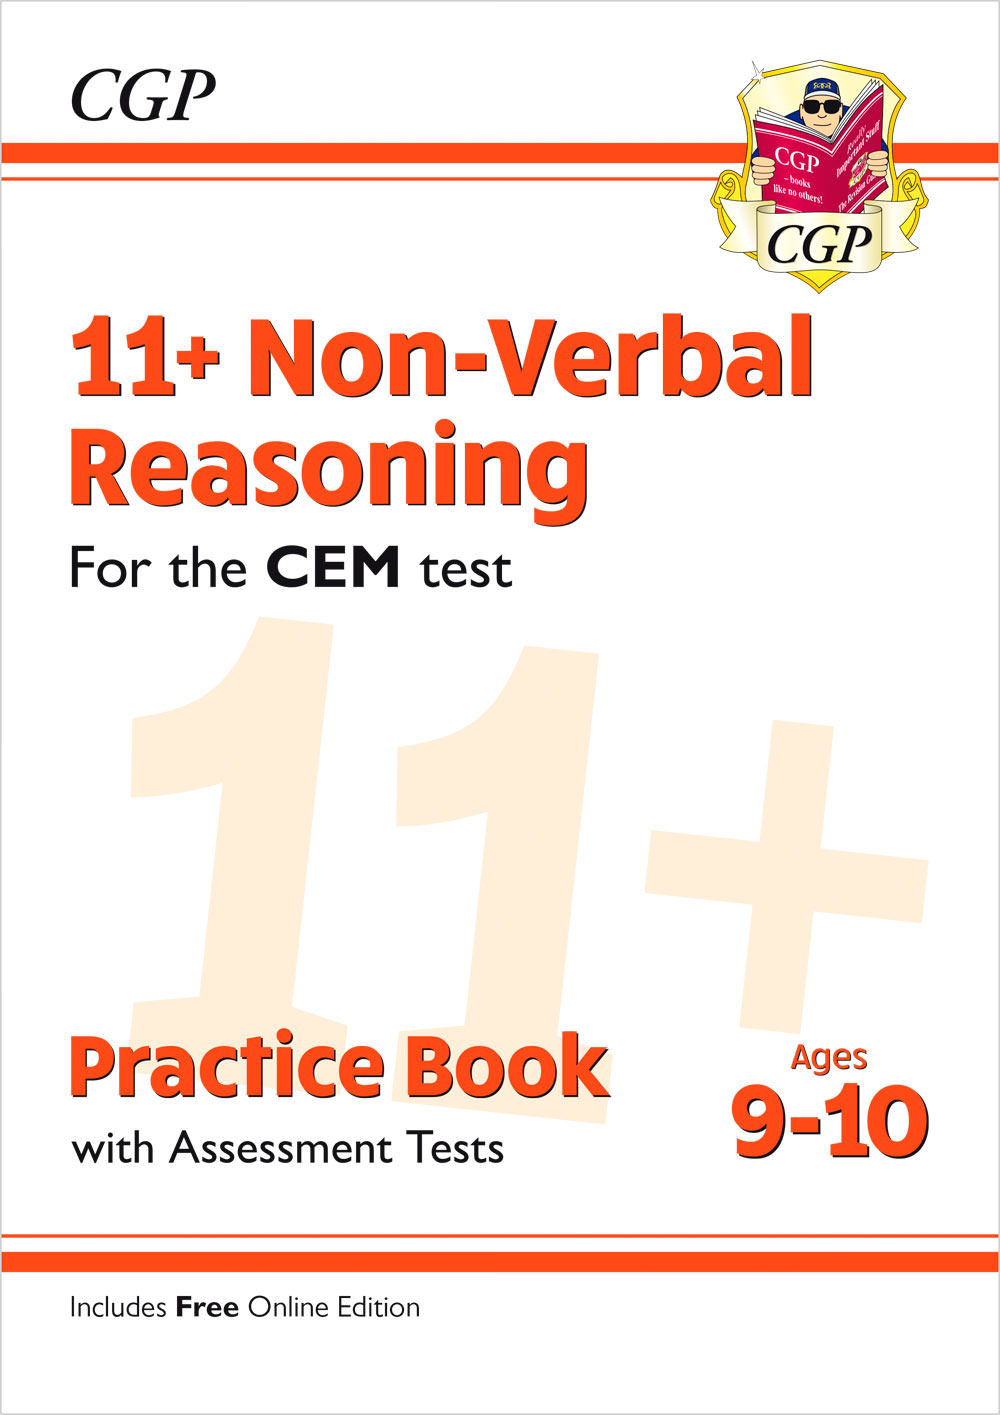 N5QDE2 - New 11+ CEM Non-Verbal Reasoning Practice Book & Assessment Tests - Ages 9-10 (with Online